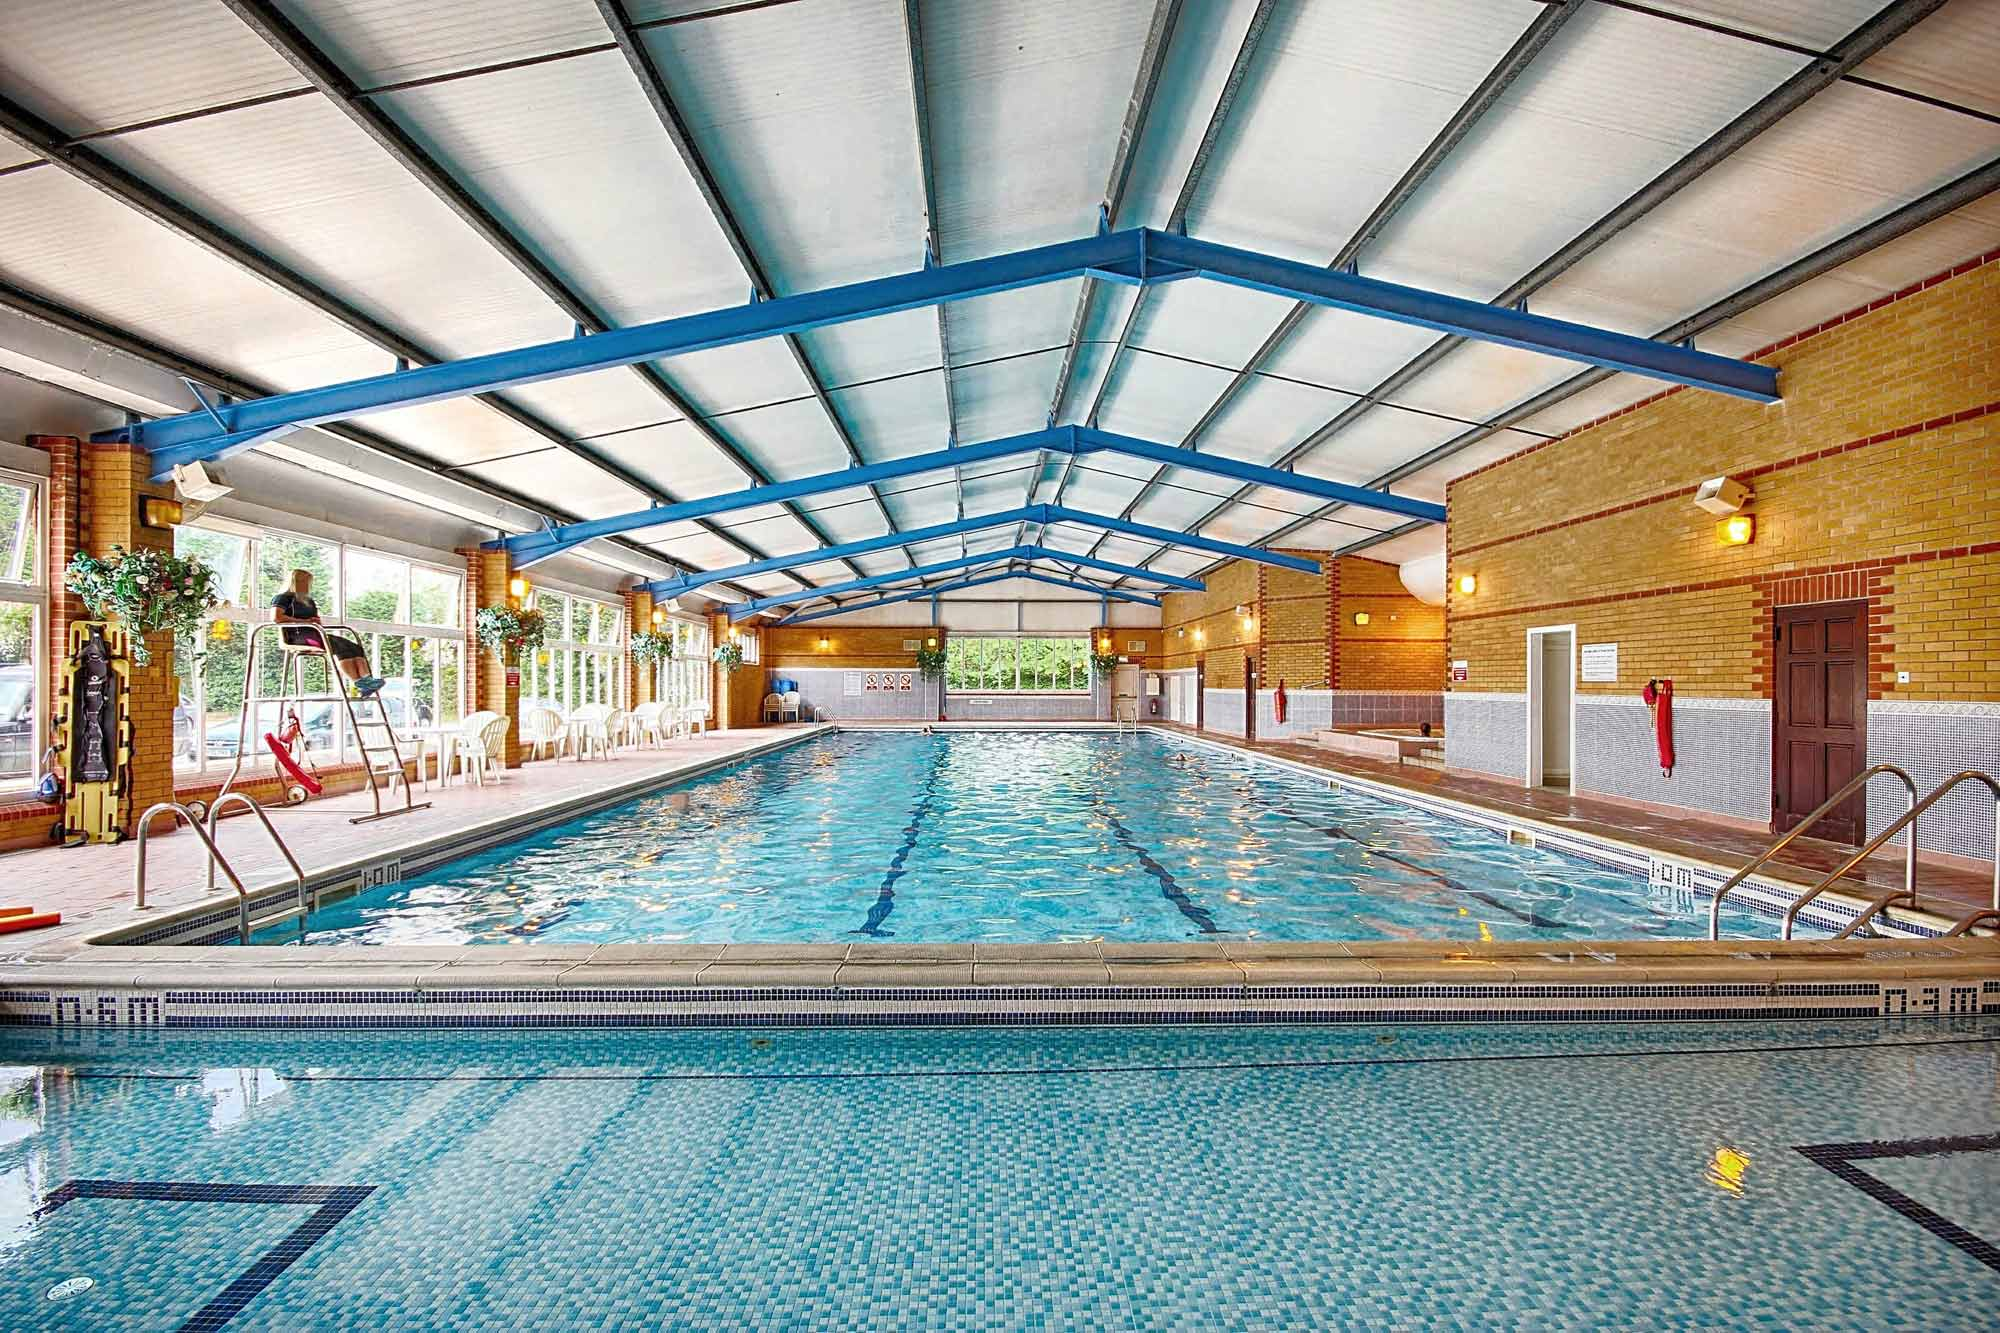 Woodlands Leisure Swimming Pool And Gym Sheringham North Norfolk